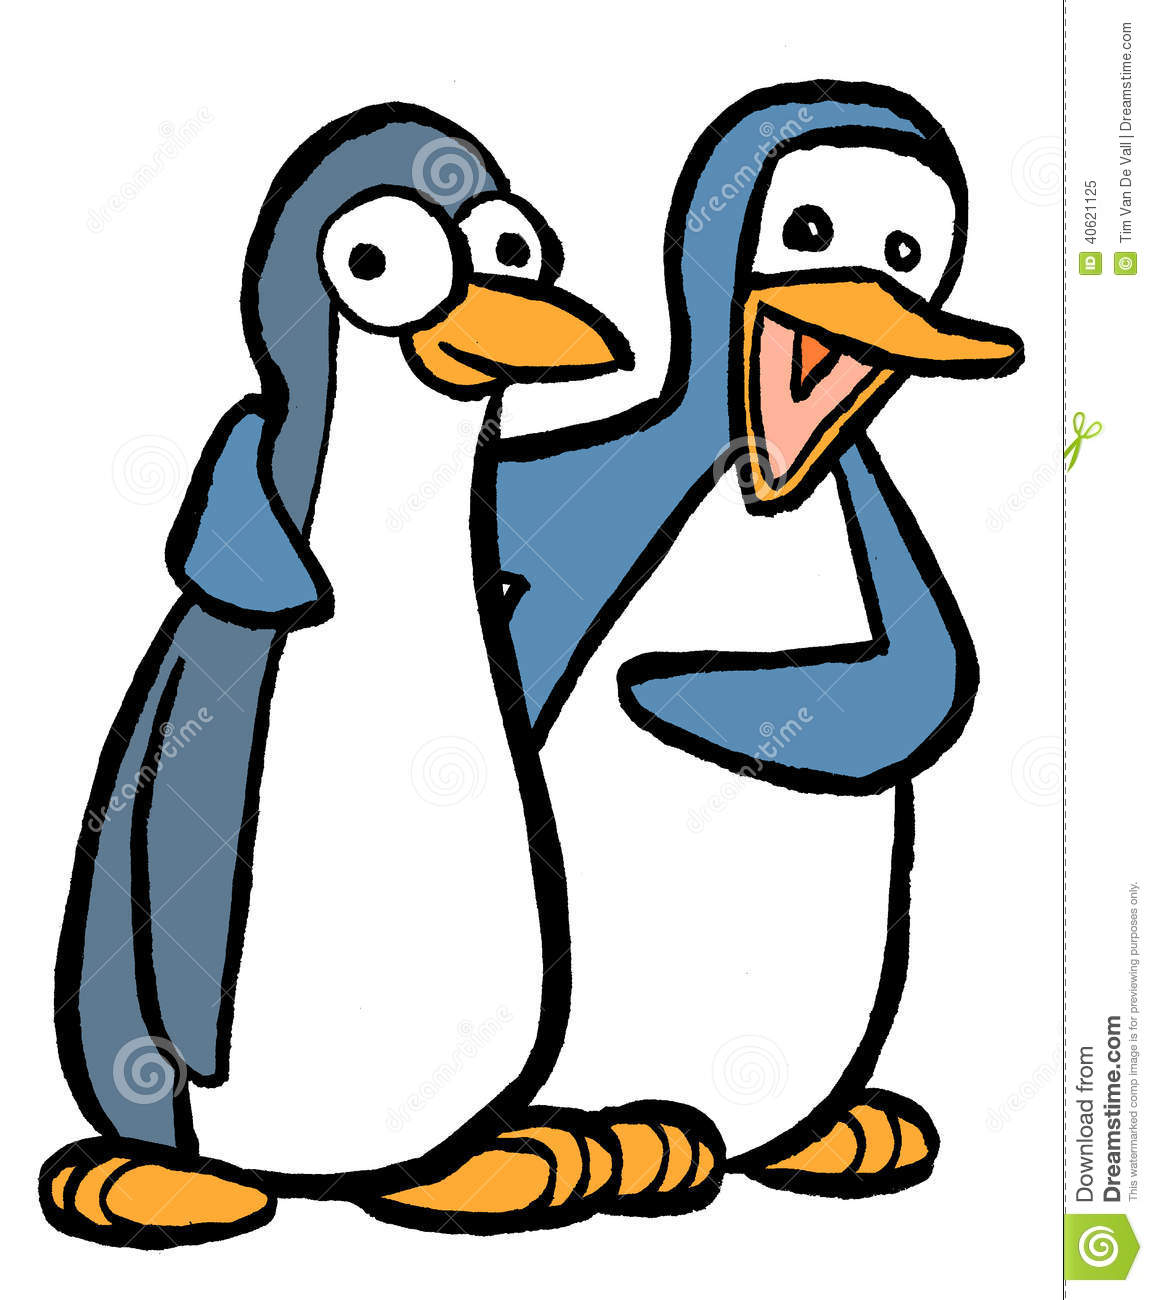 penguin pair stock illustration illustration of penguin clip art penguin images clip art penguin doctor